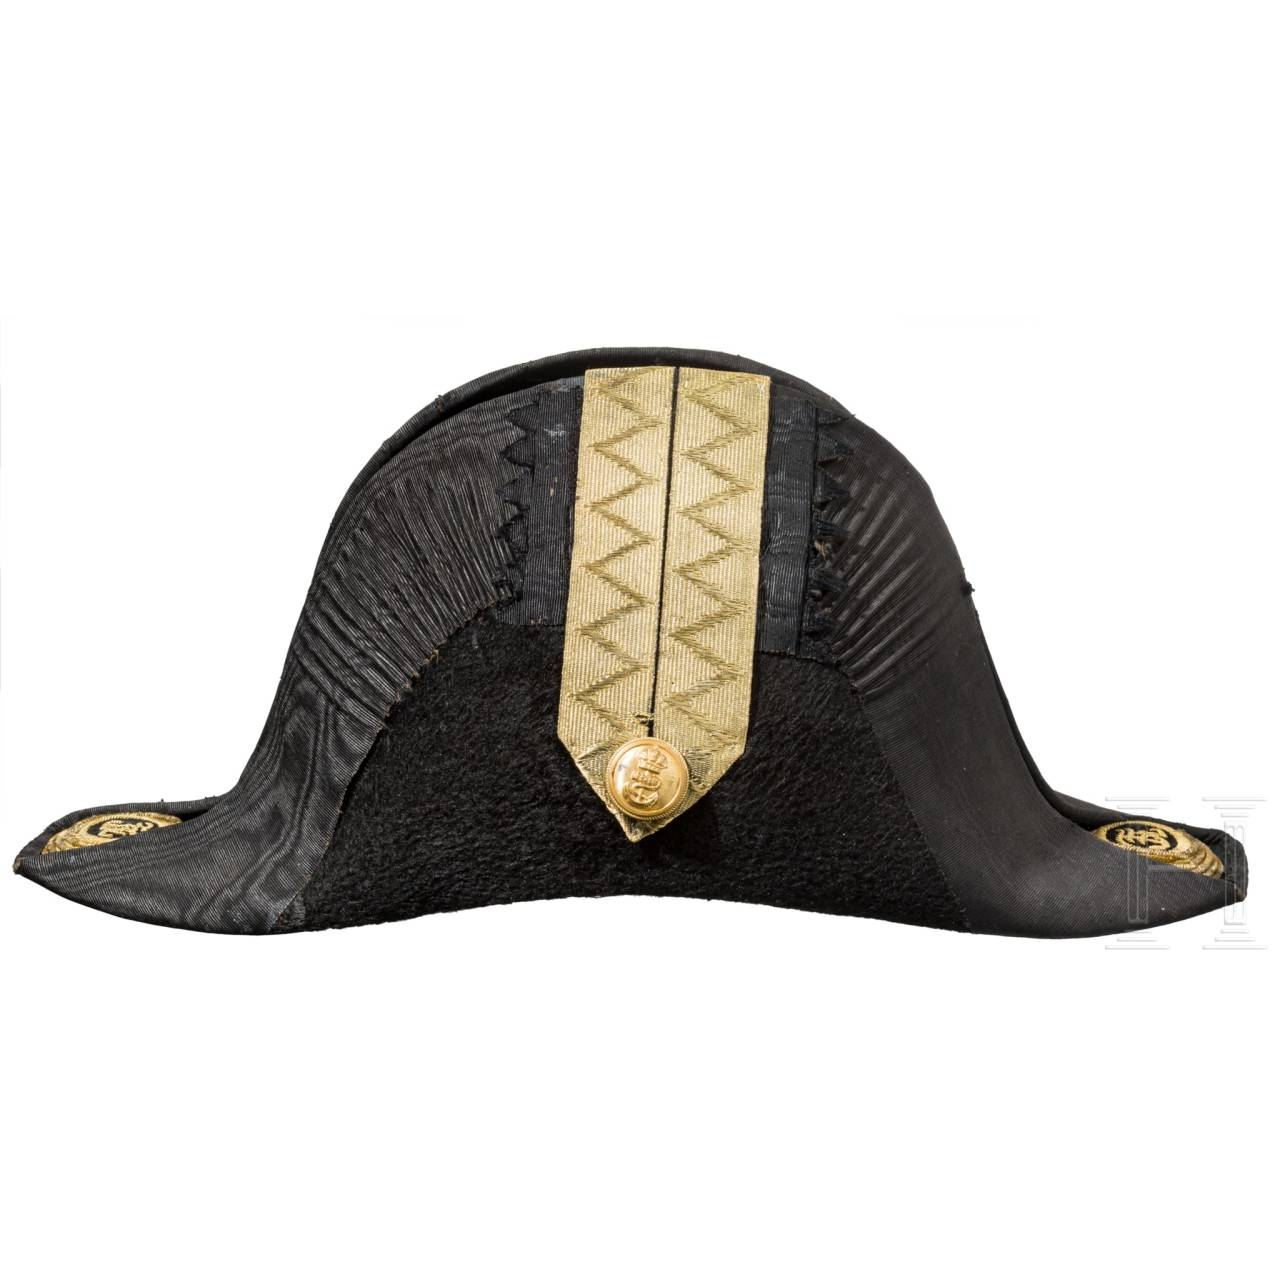 Bicorne for an officer of the k. u. k. navy, ca. 1900